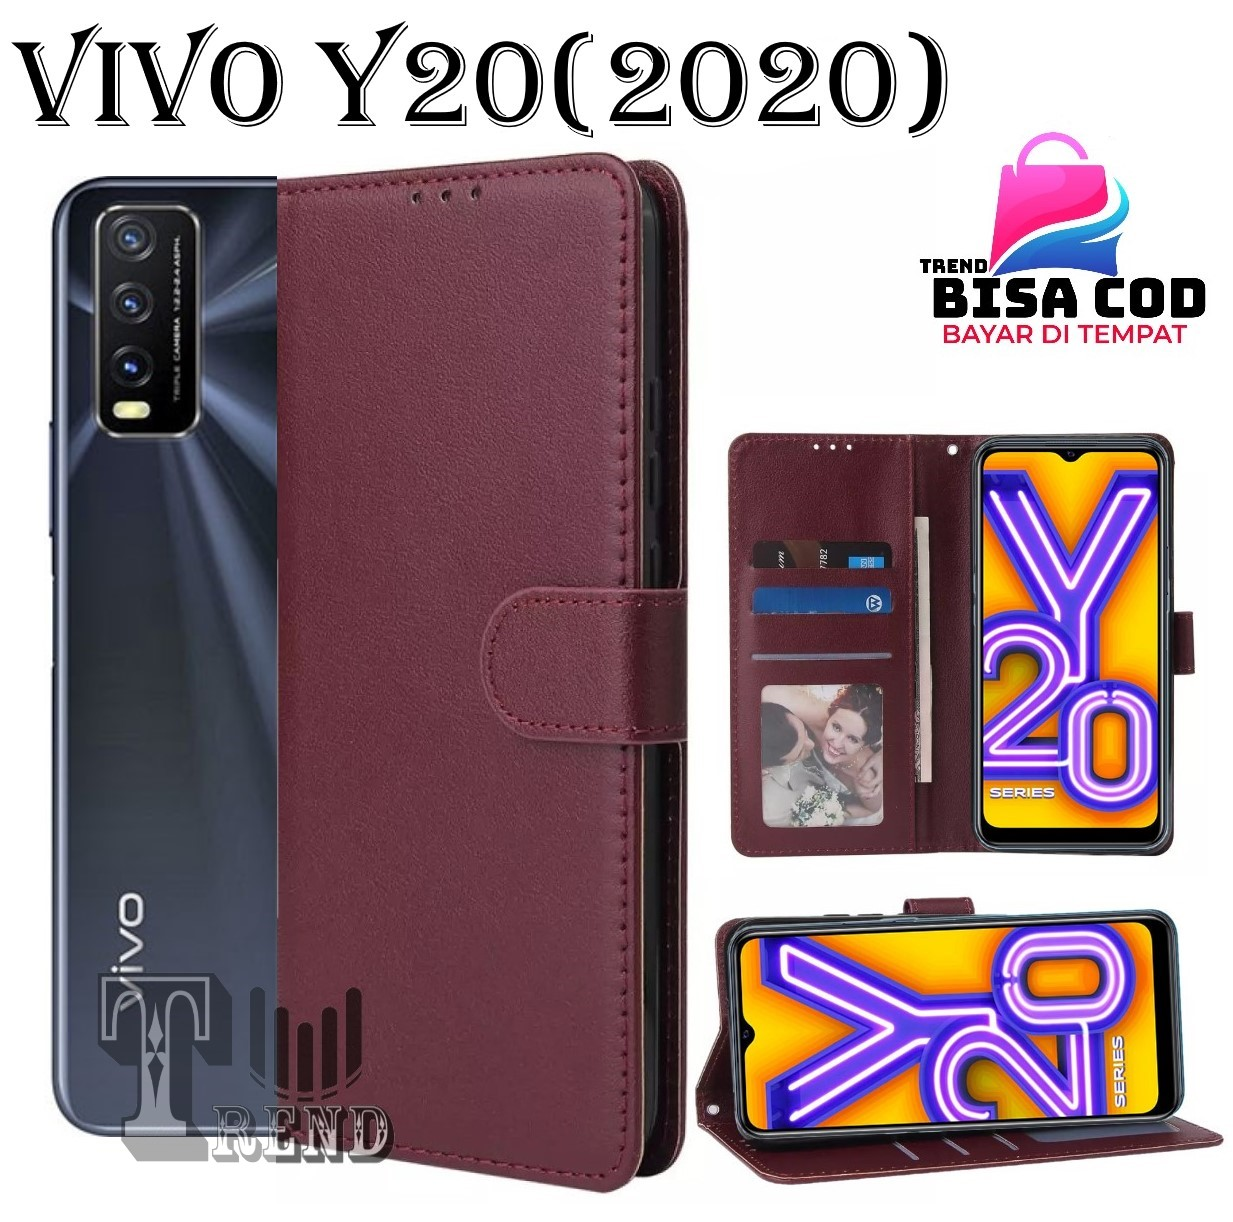 LEATHER CASE FLIP UNTUK VIVO Y20 (2020) -FLIP  WALLET CASE KULIT VIVO Y20 (2020) - CASING DOMPET-FLIP COVER LEATHER-SARUNG BUKU HP